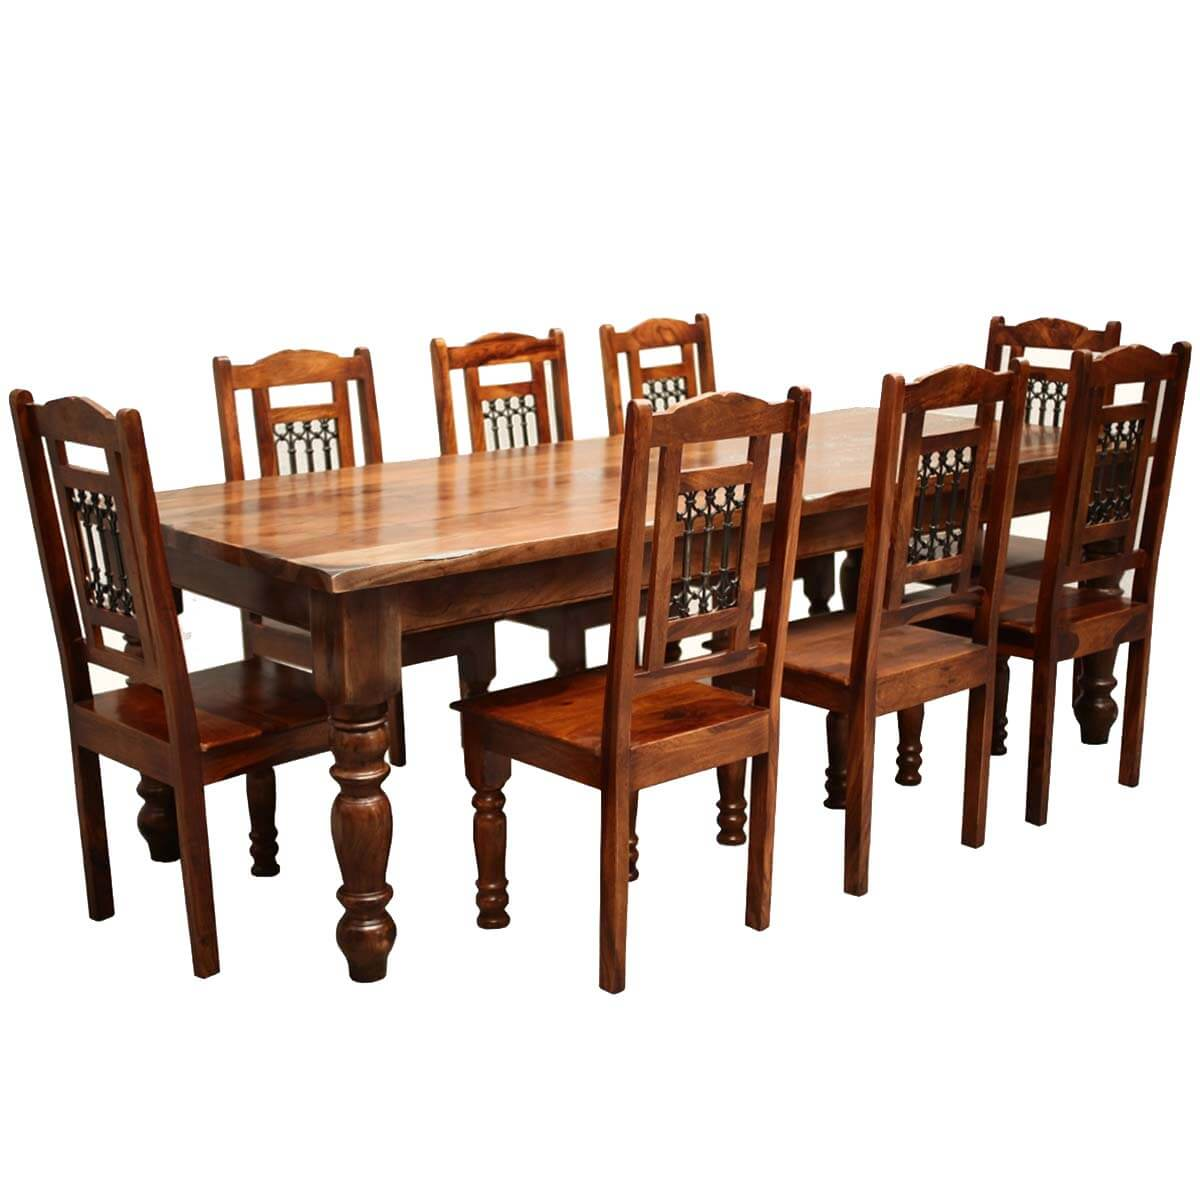 Rustic furniture solid wood large dining table 8 chair set for Wood dining table set